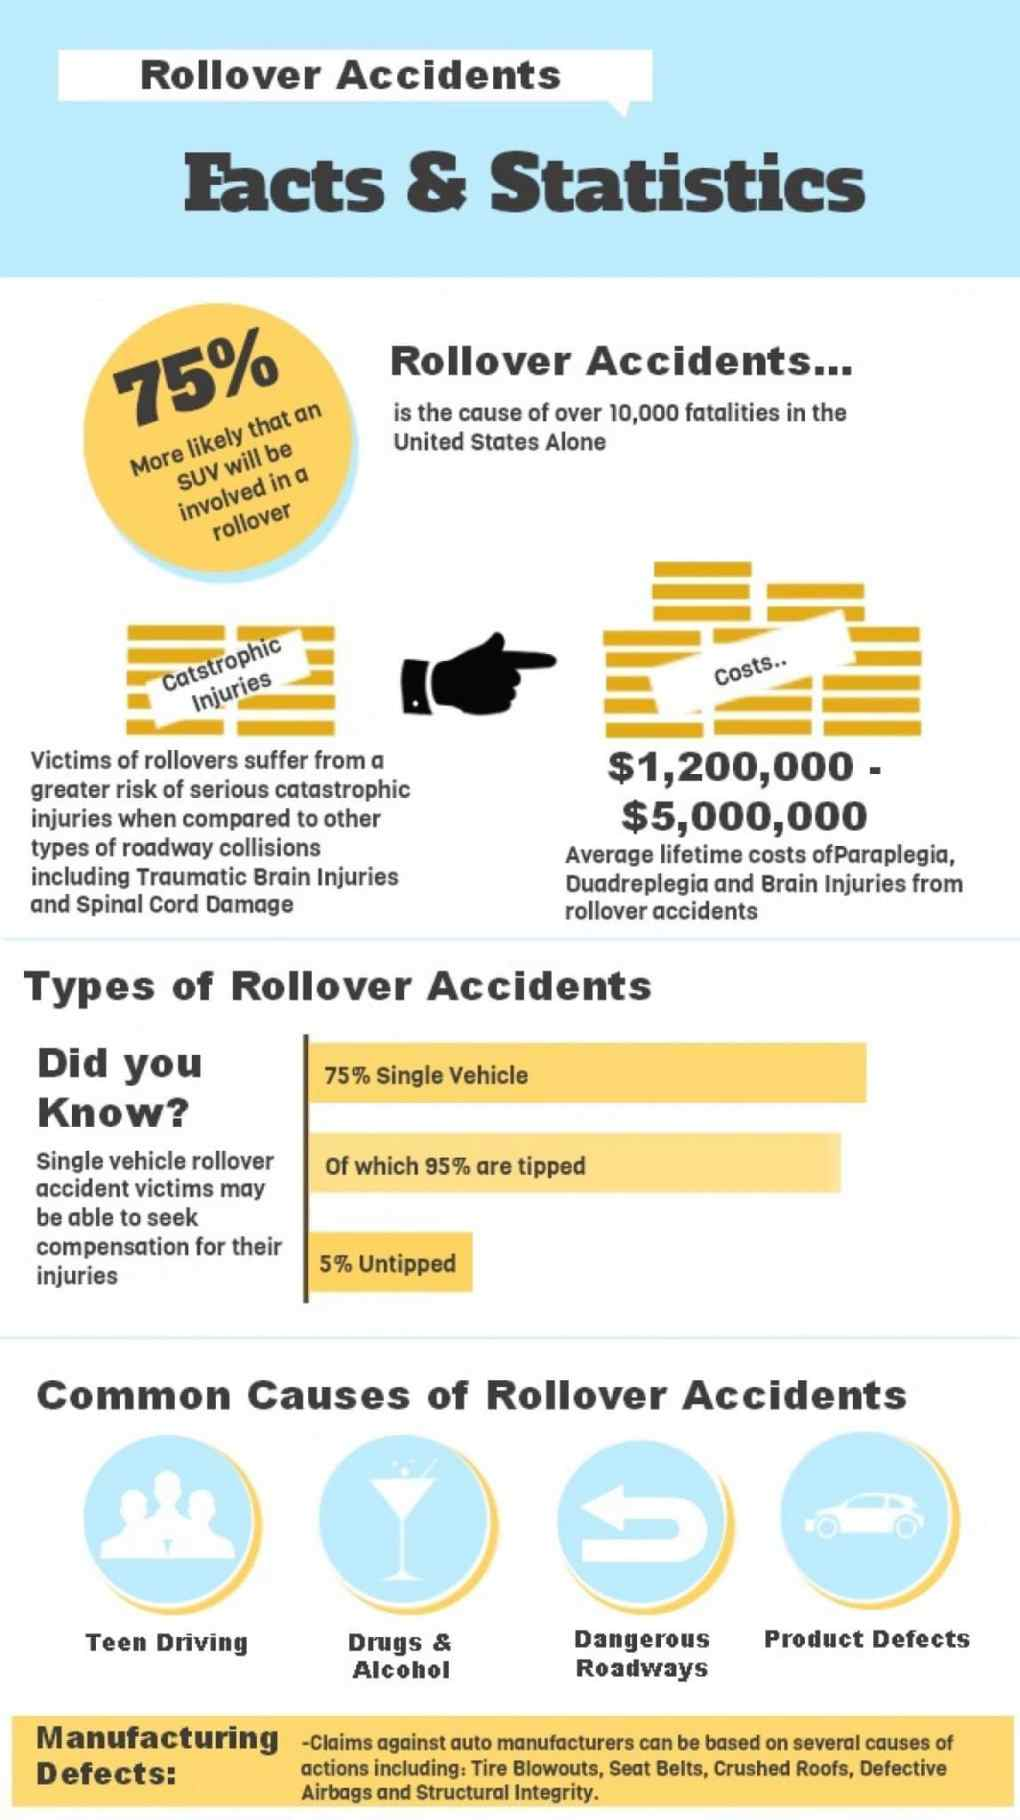 Rollover accident facts and statistics Law Offices of Daniel Kim